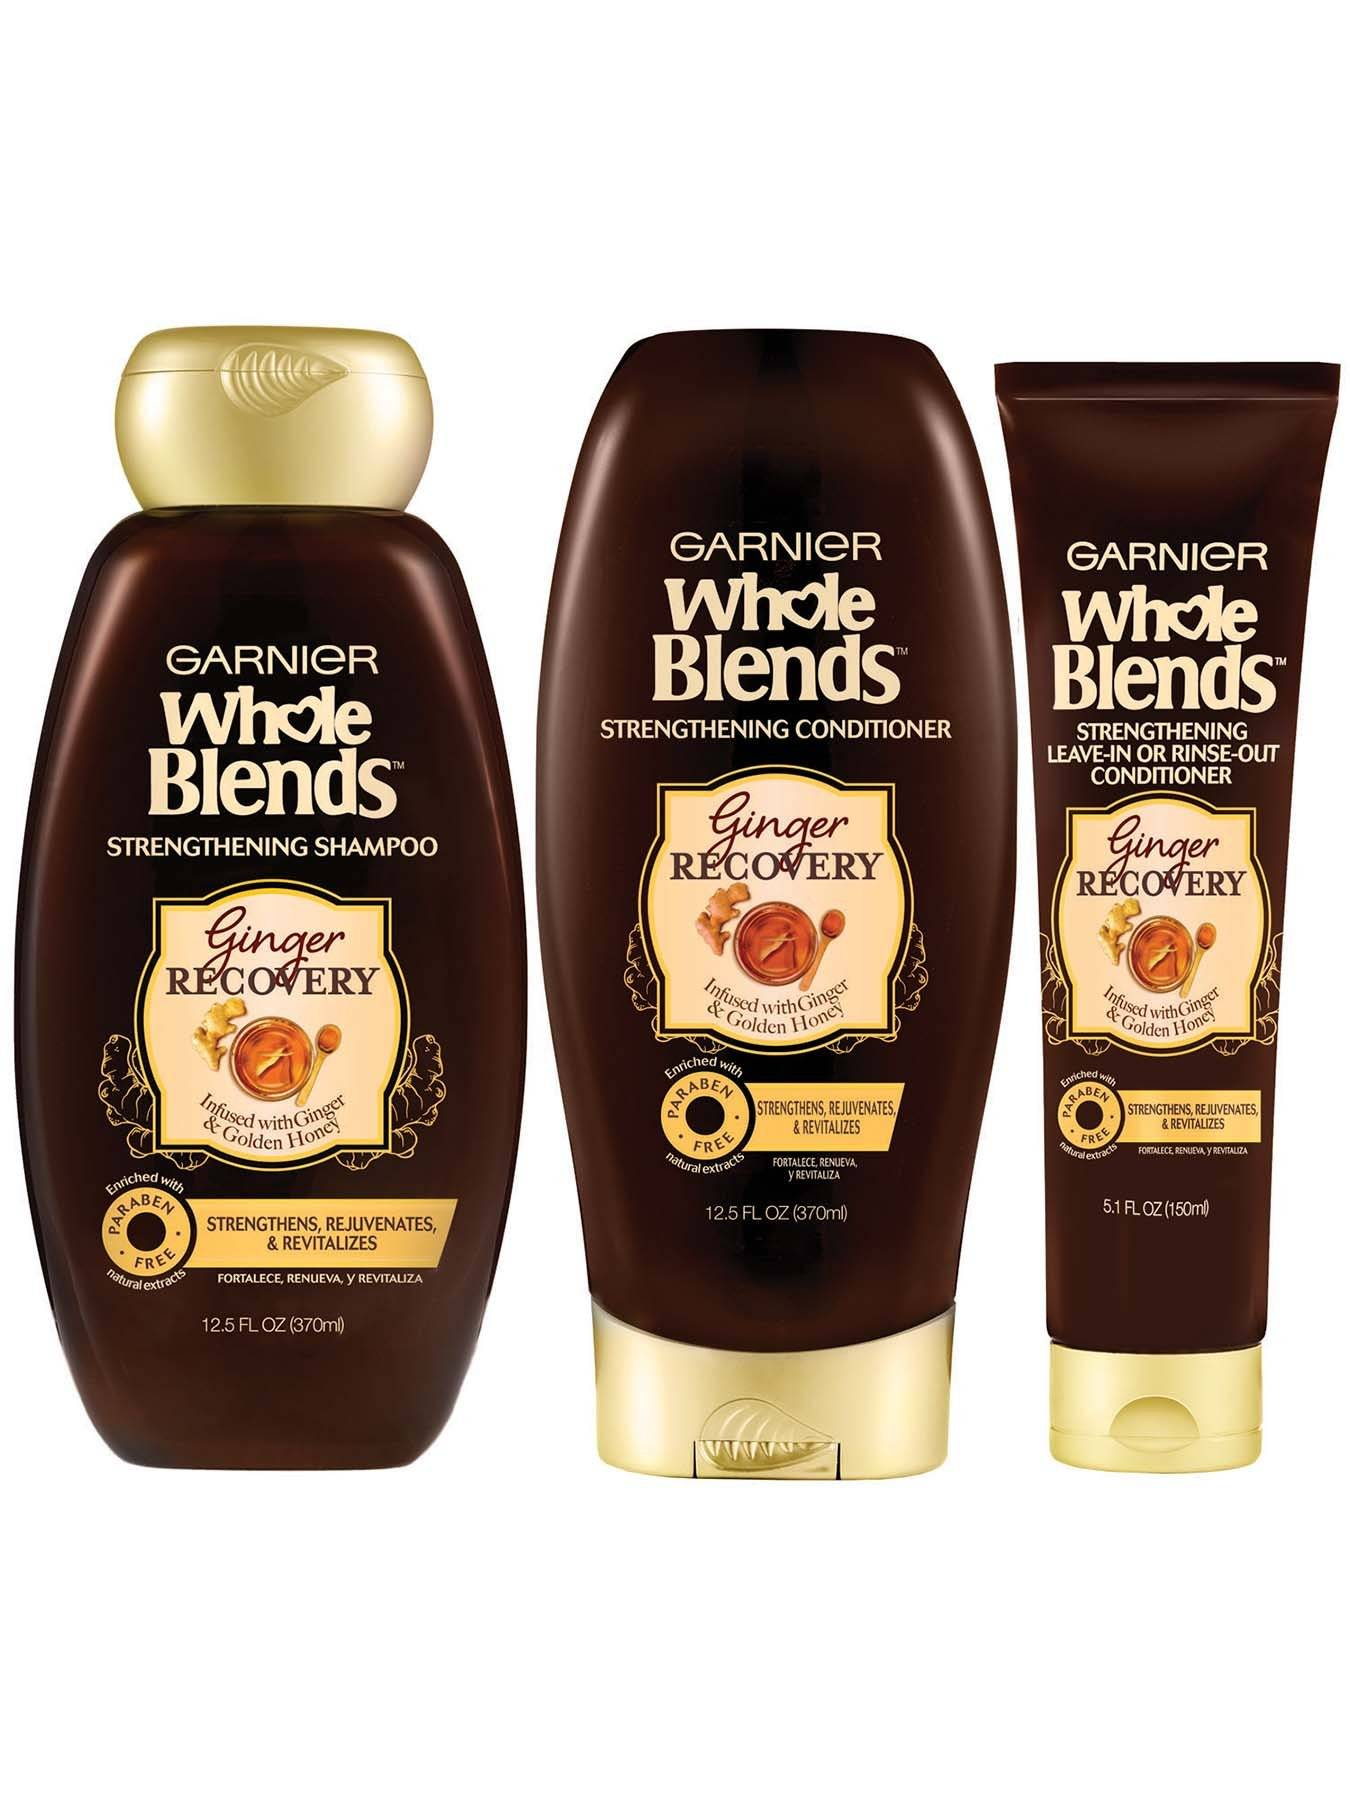 Front view of Garnier Whole Blends™ Ginger Recovery Strengthening Shampoo, Ginger Recovery Strengthening Conditioner, and Ginger Recovery Leave-In or Rinse-Out Treatment.